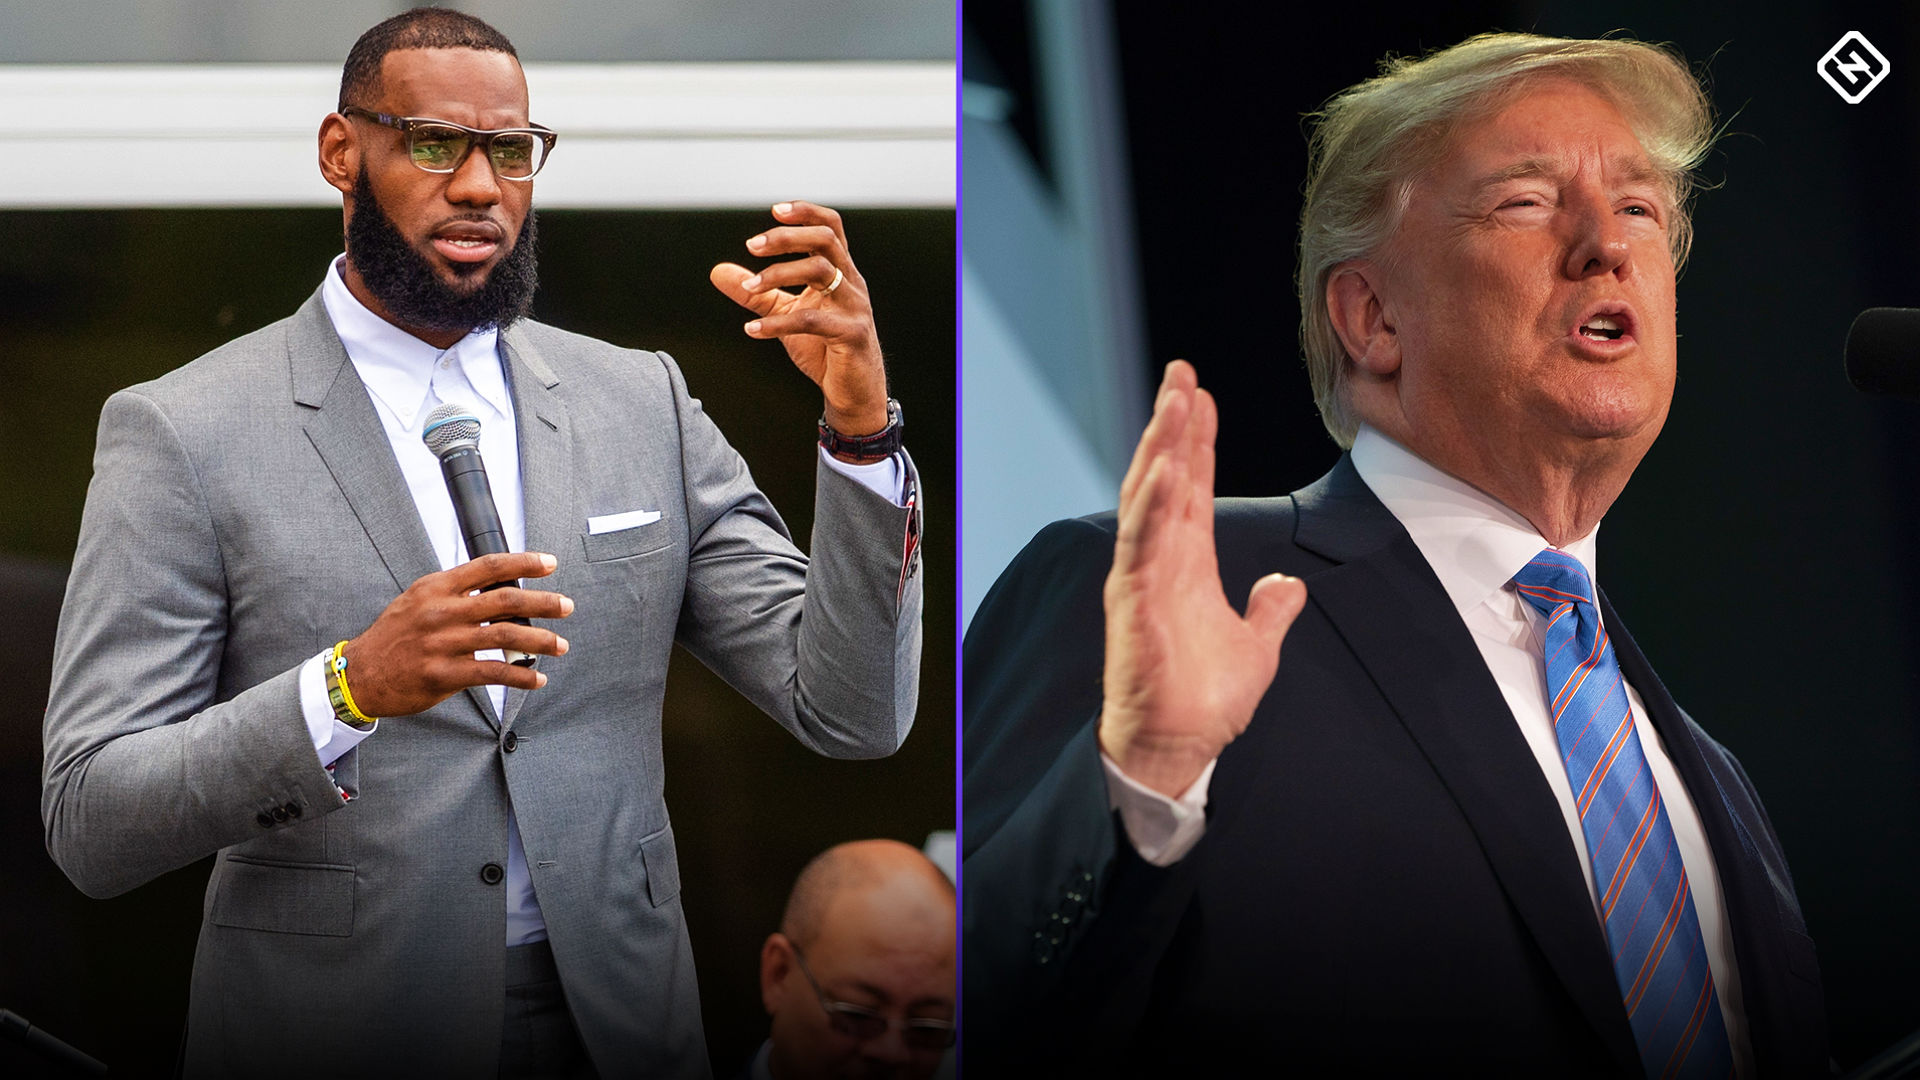 Don Lemon Takes Jabs At Donald Trump After LeBron James Interview